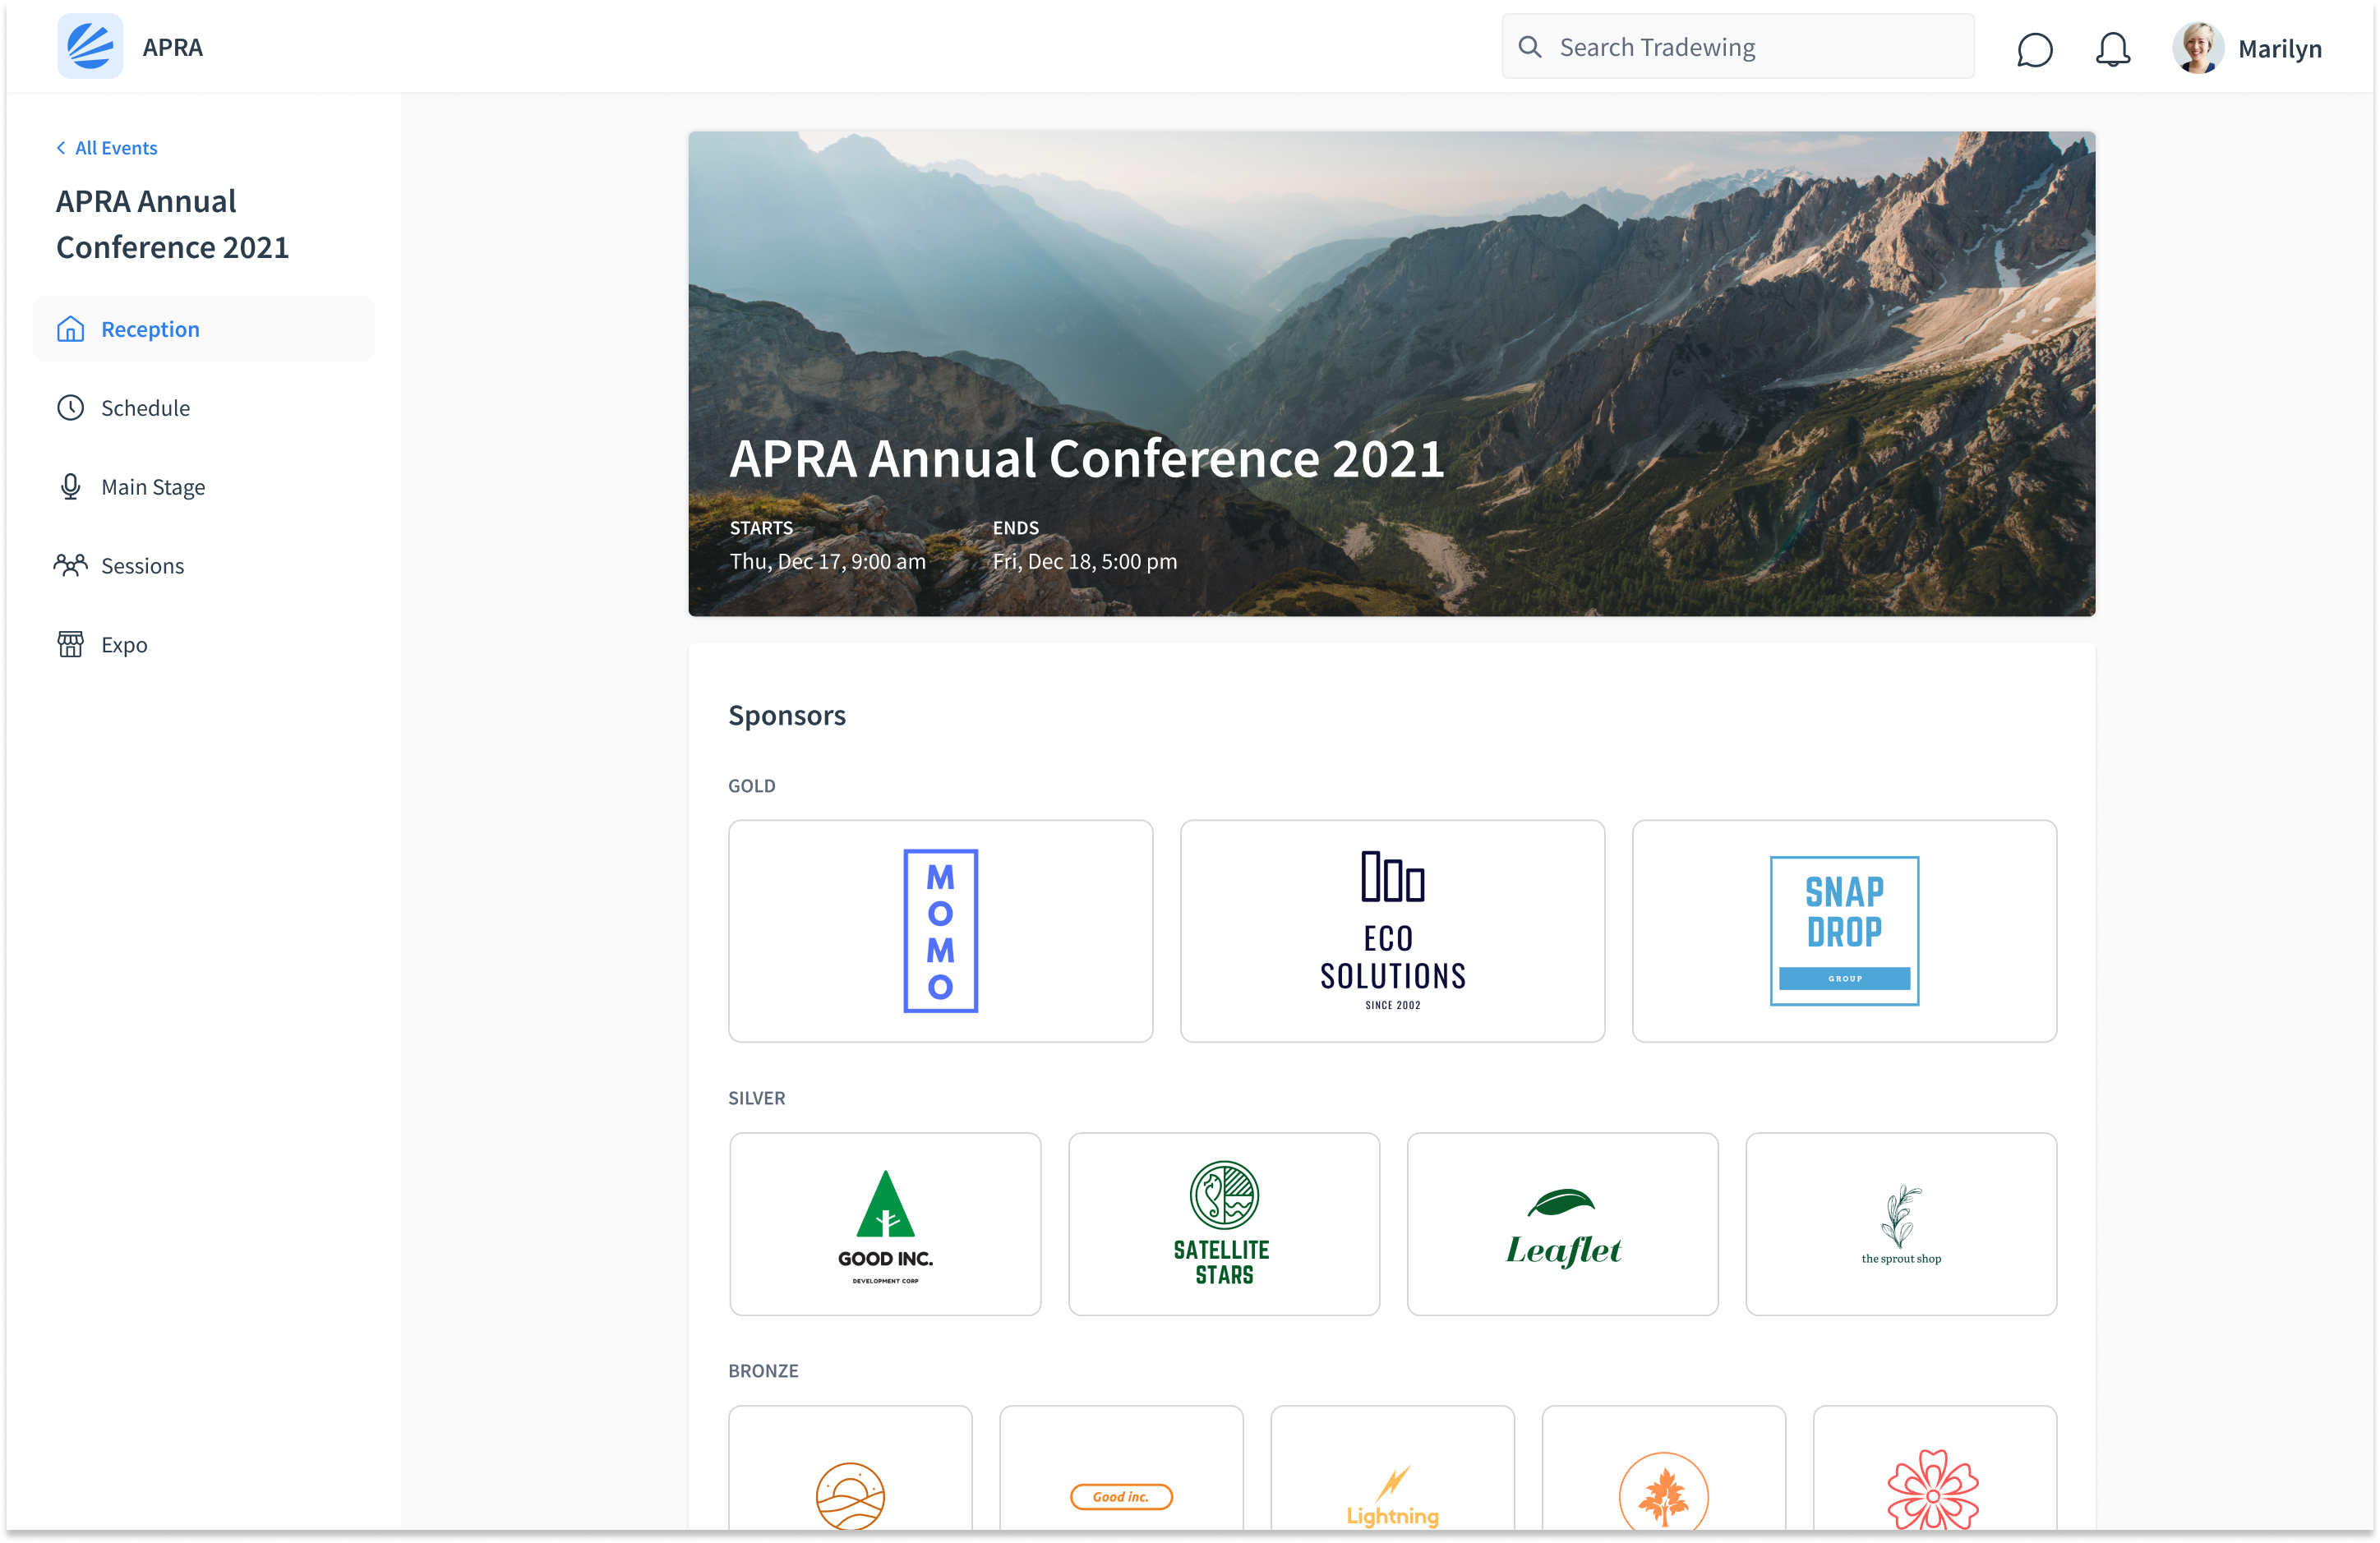 Conferences Interface with Tradewing